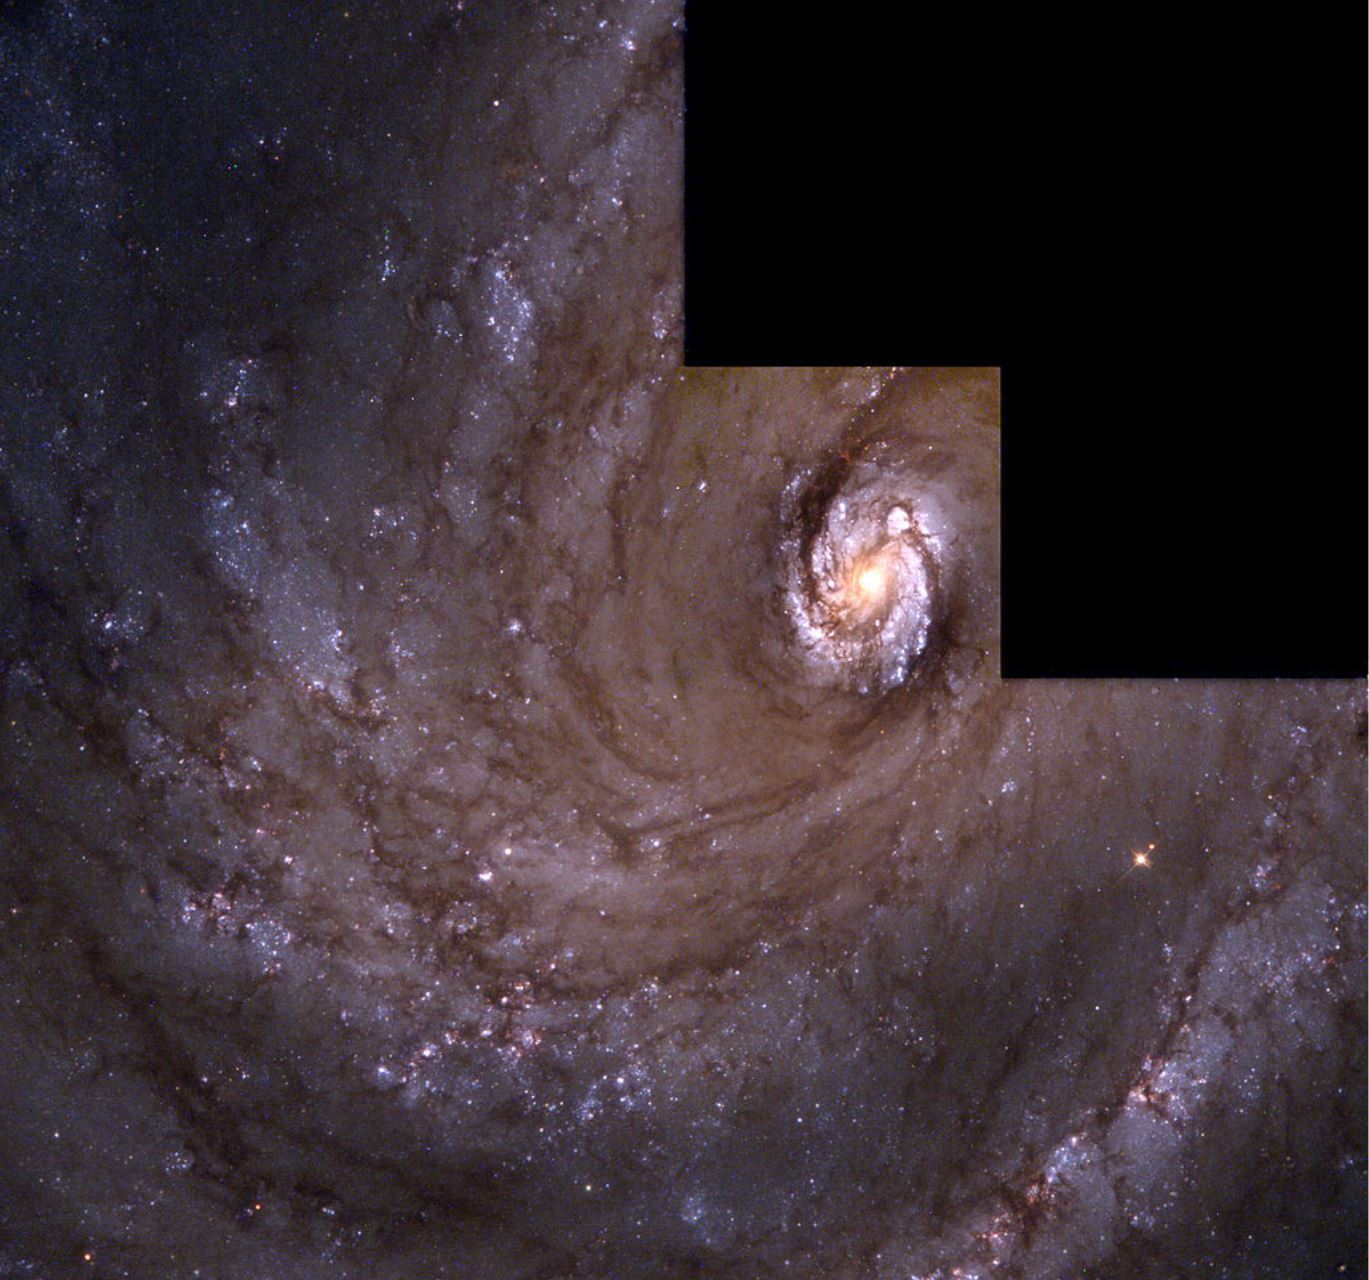 Spiral Galaxy M100 (NGC 4321) as imaged by the WFPC2 on the Hubble. - Image Credit:  J. Trauger, JPL and NASA/ESA via Wikimedia Commons